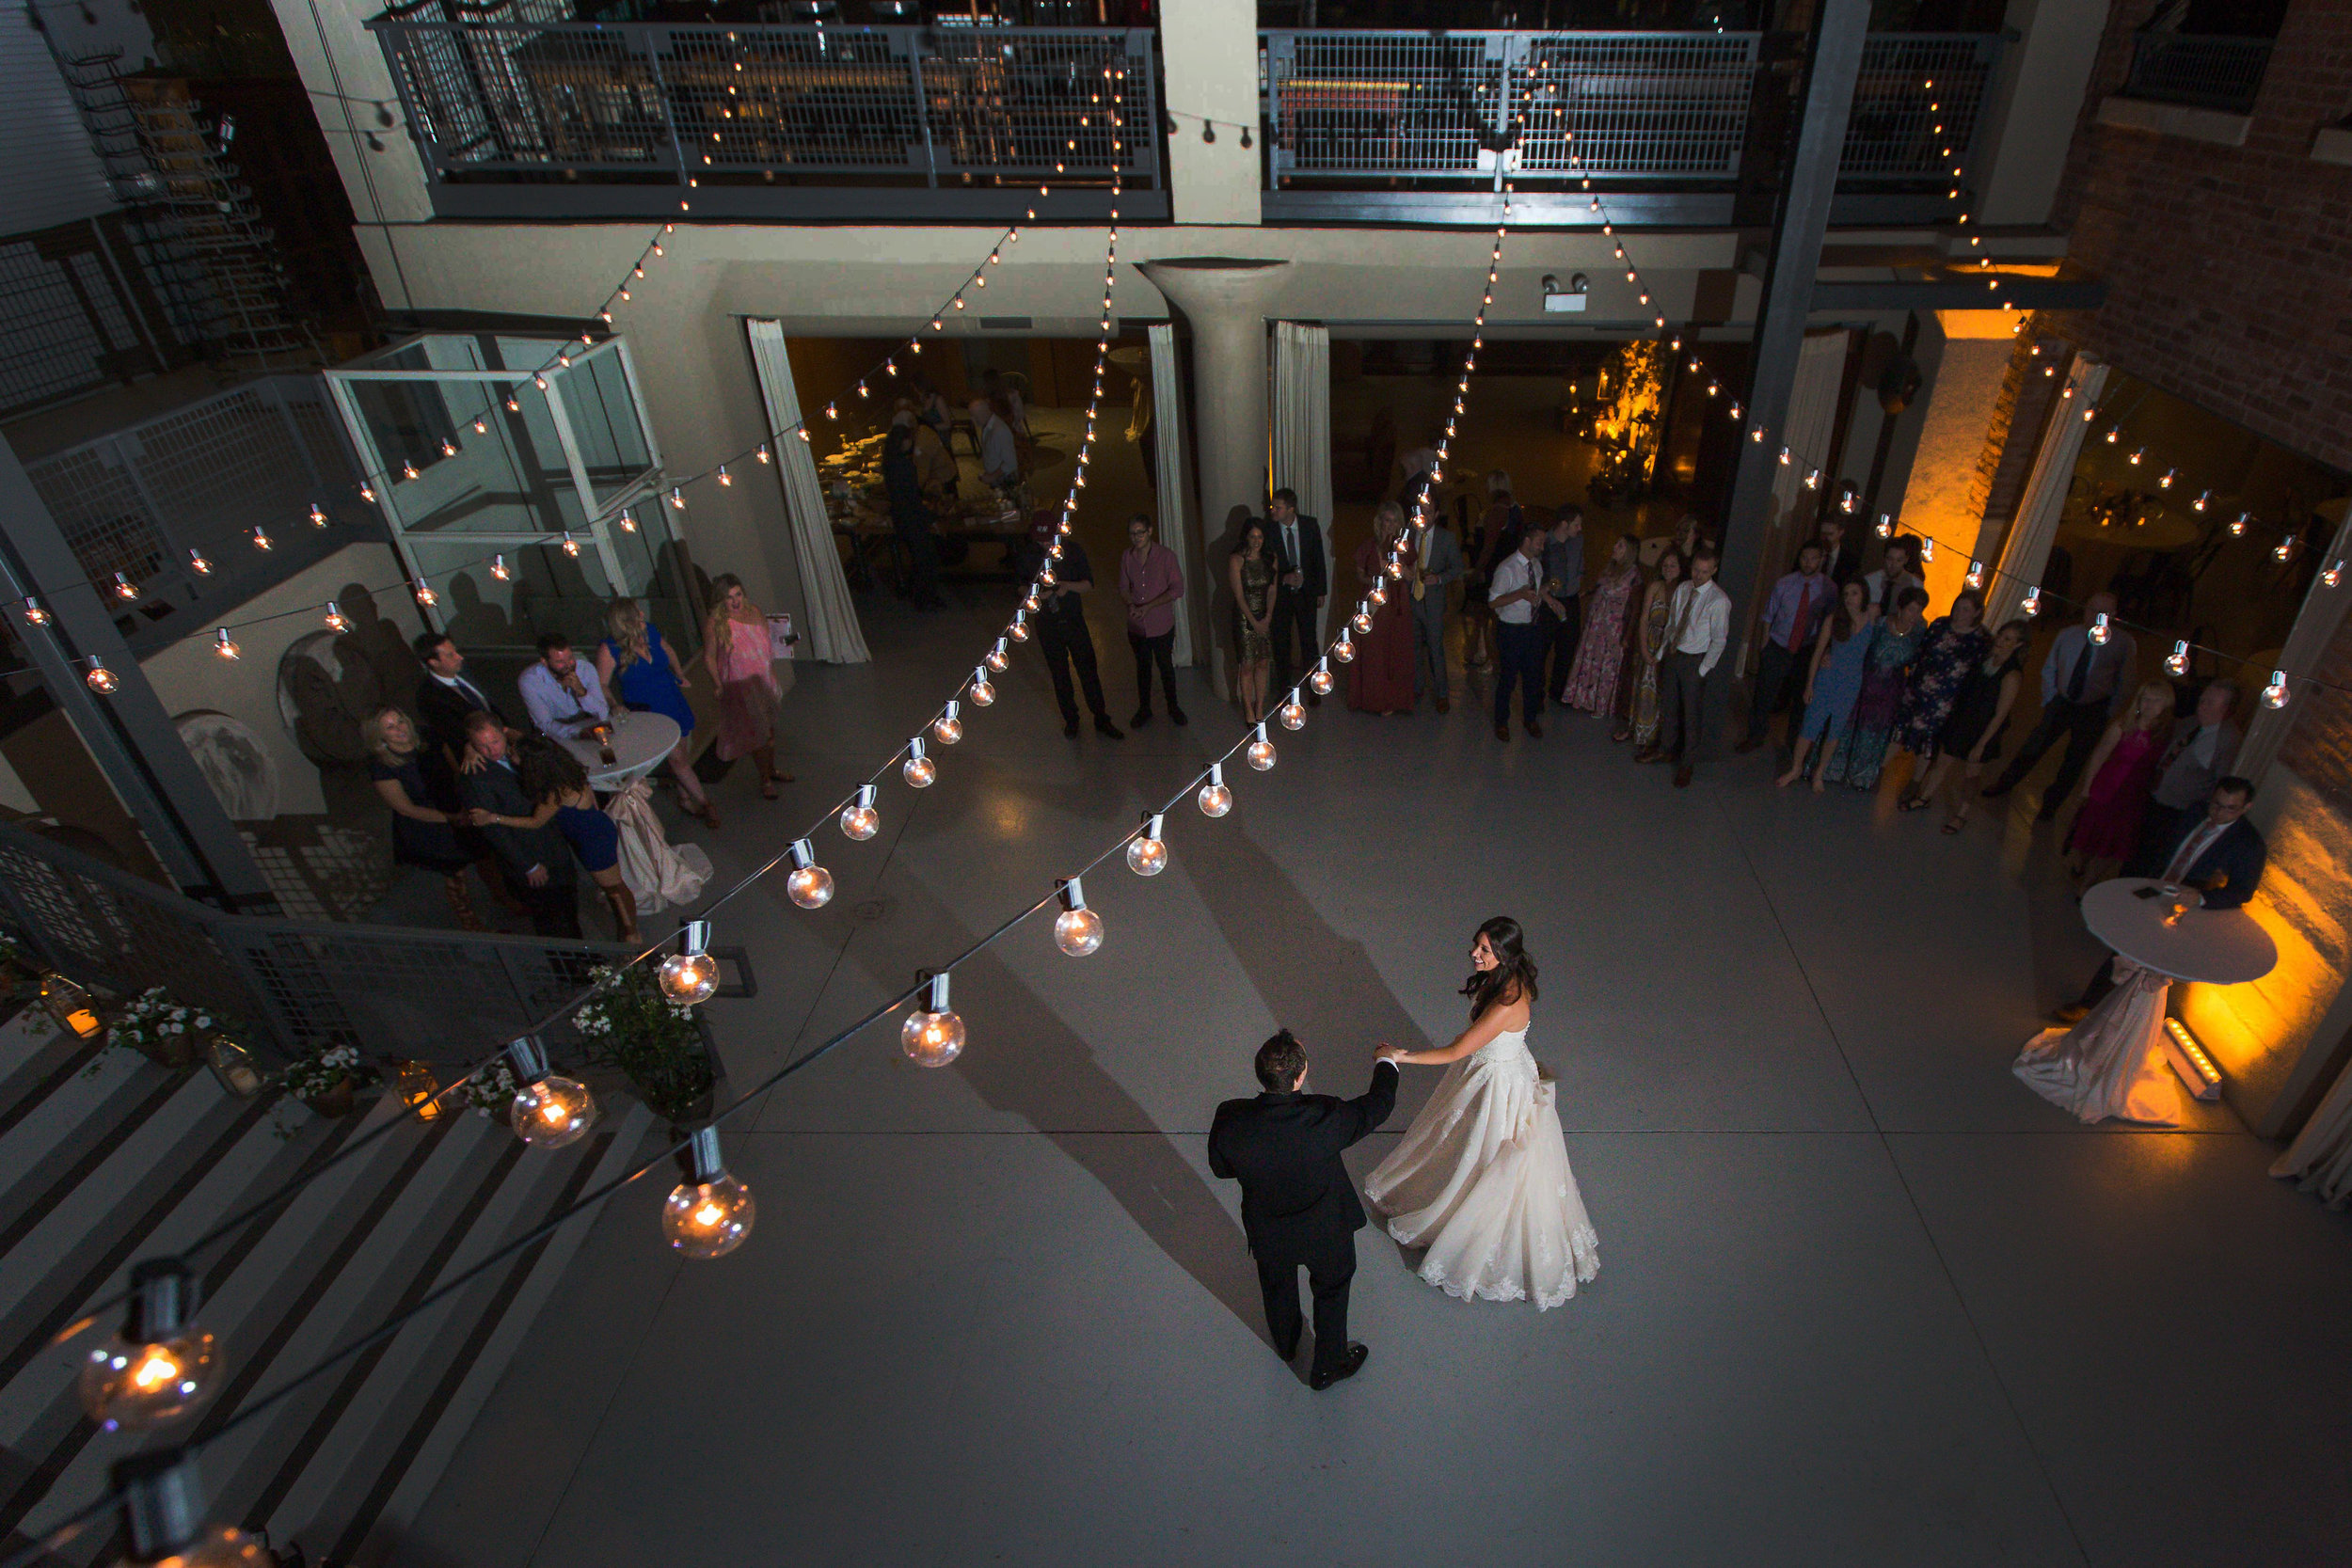 Chicago_wedding_venue_loft-13-5.jpg